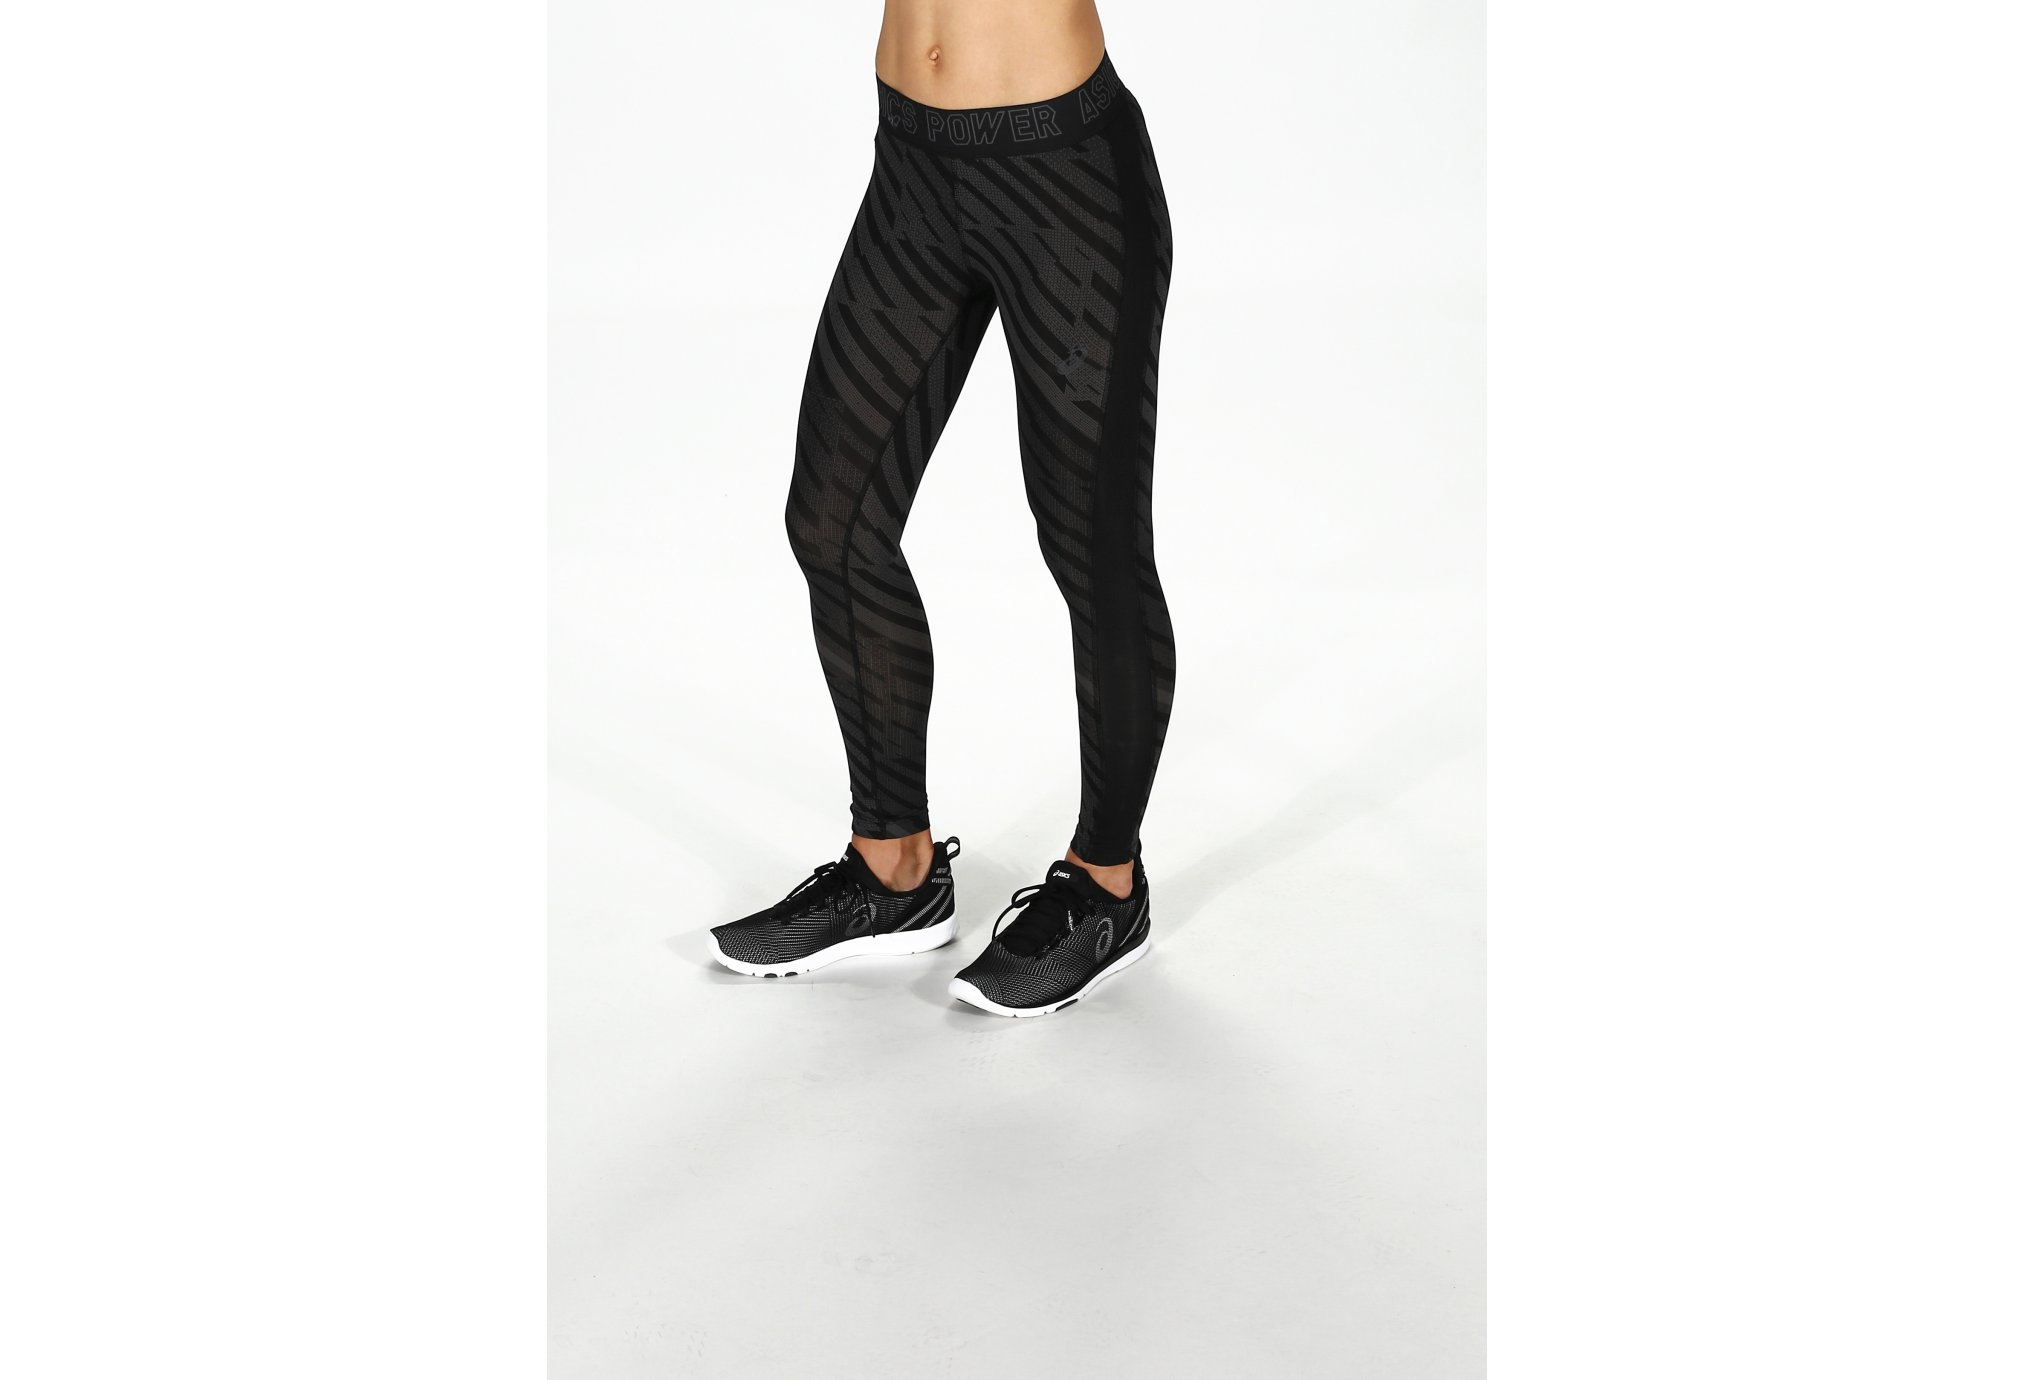 Asics Base Graphic 7/8 Tight W vêtement running femme